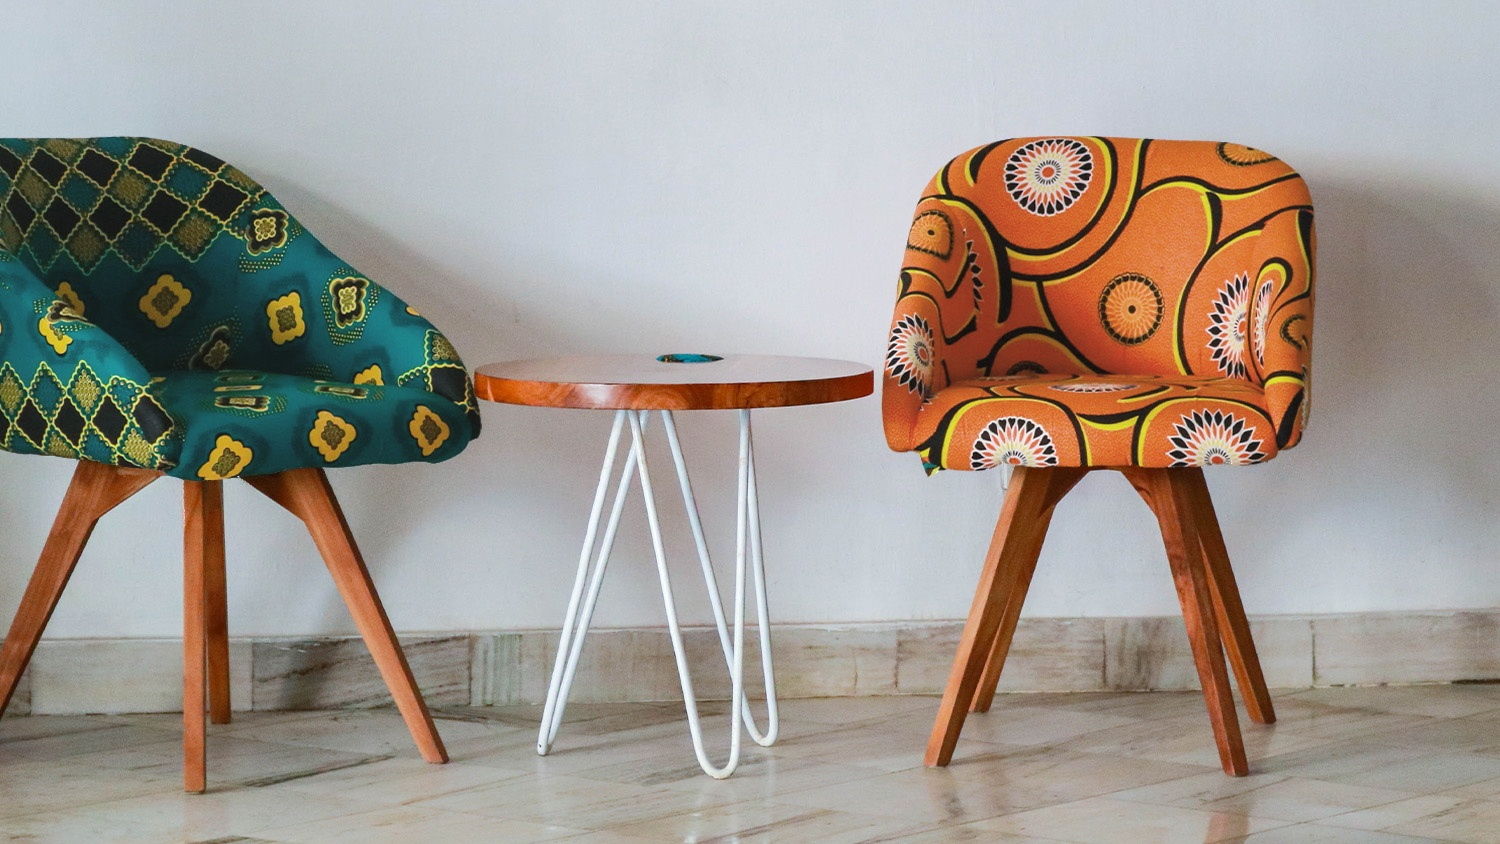 Furniture Refurbishing Tips Tricks And How-To's